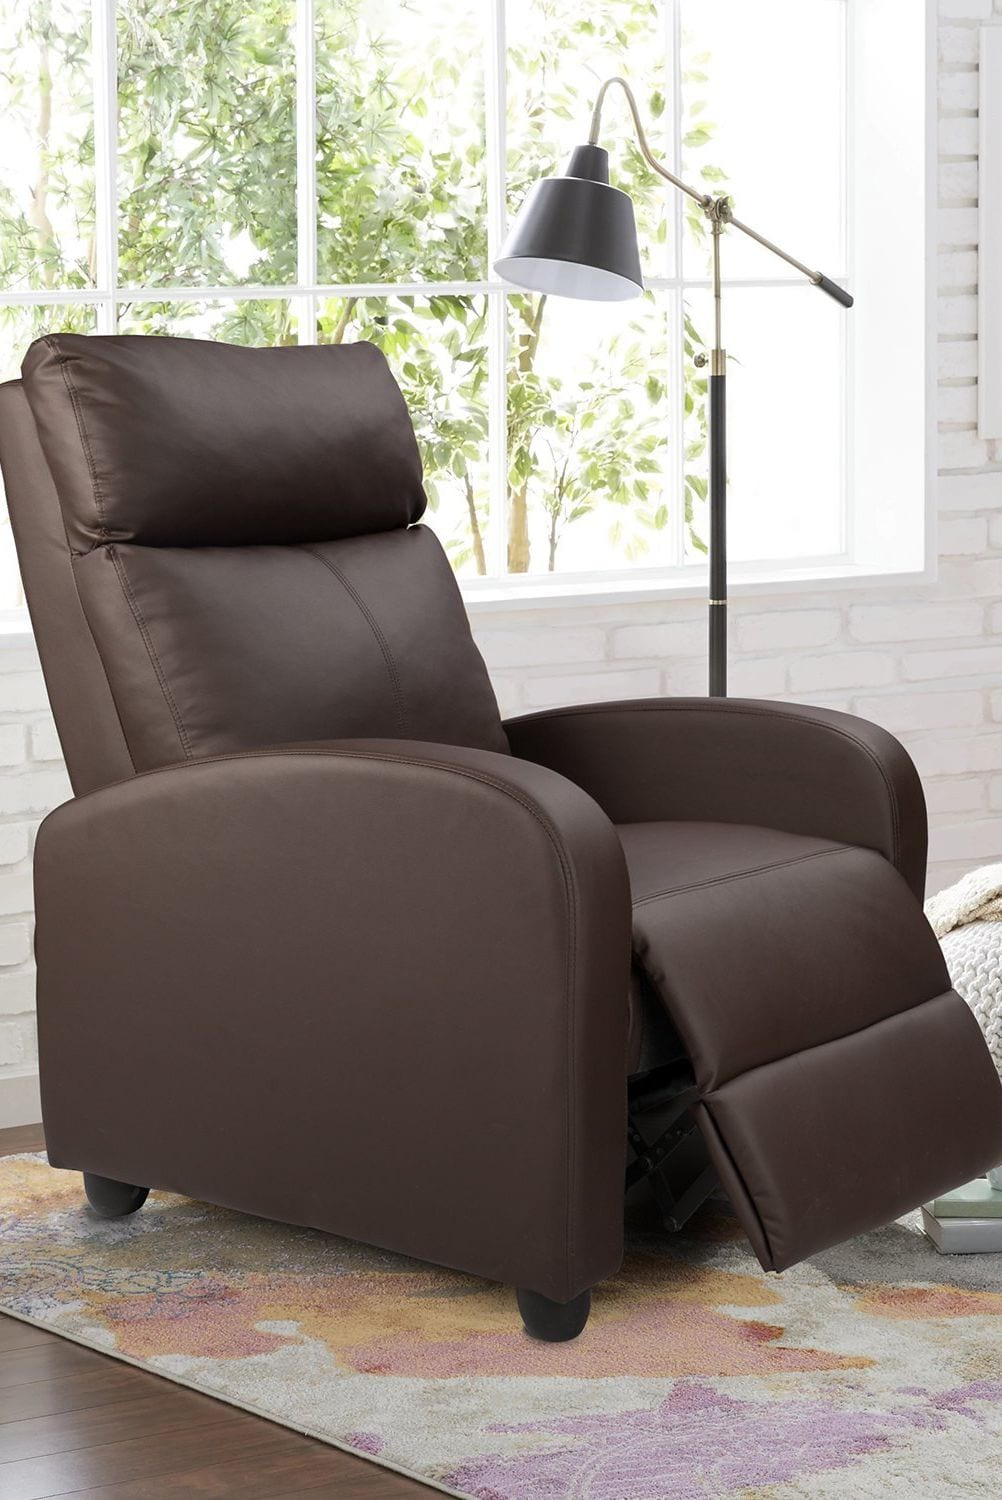 Leather Recliner Chair for living chair